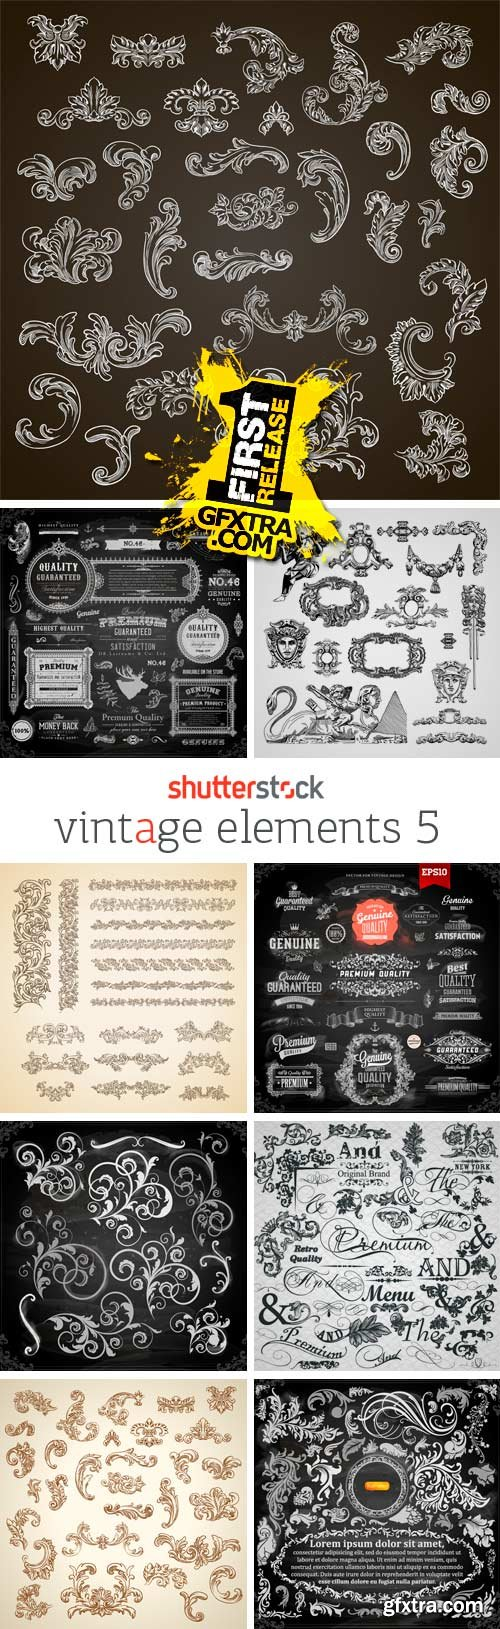 T shirt design 4 25x eps - Amazing Ss Vintage Elements 5 25xeps